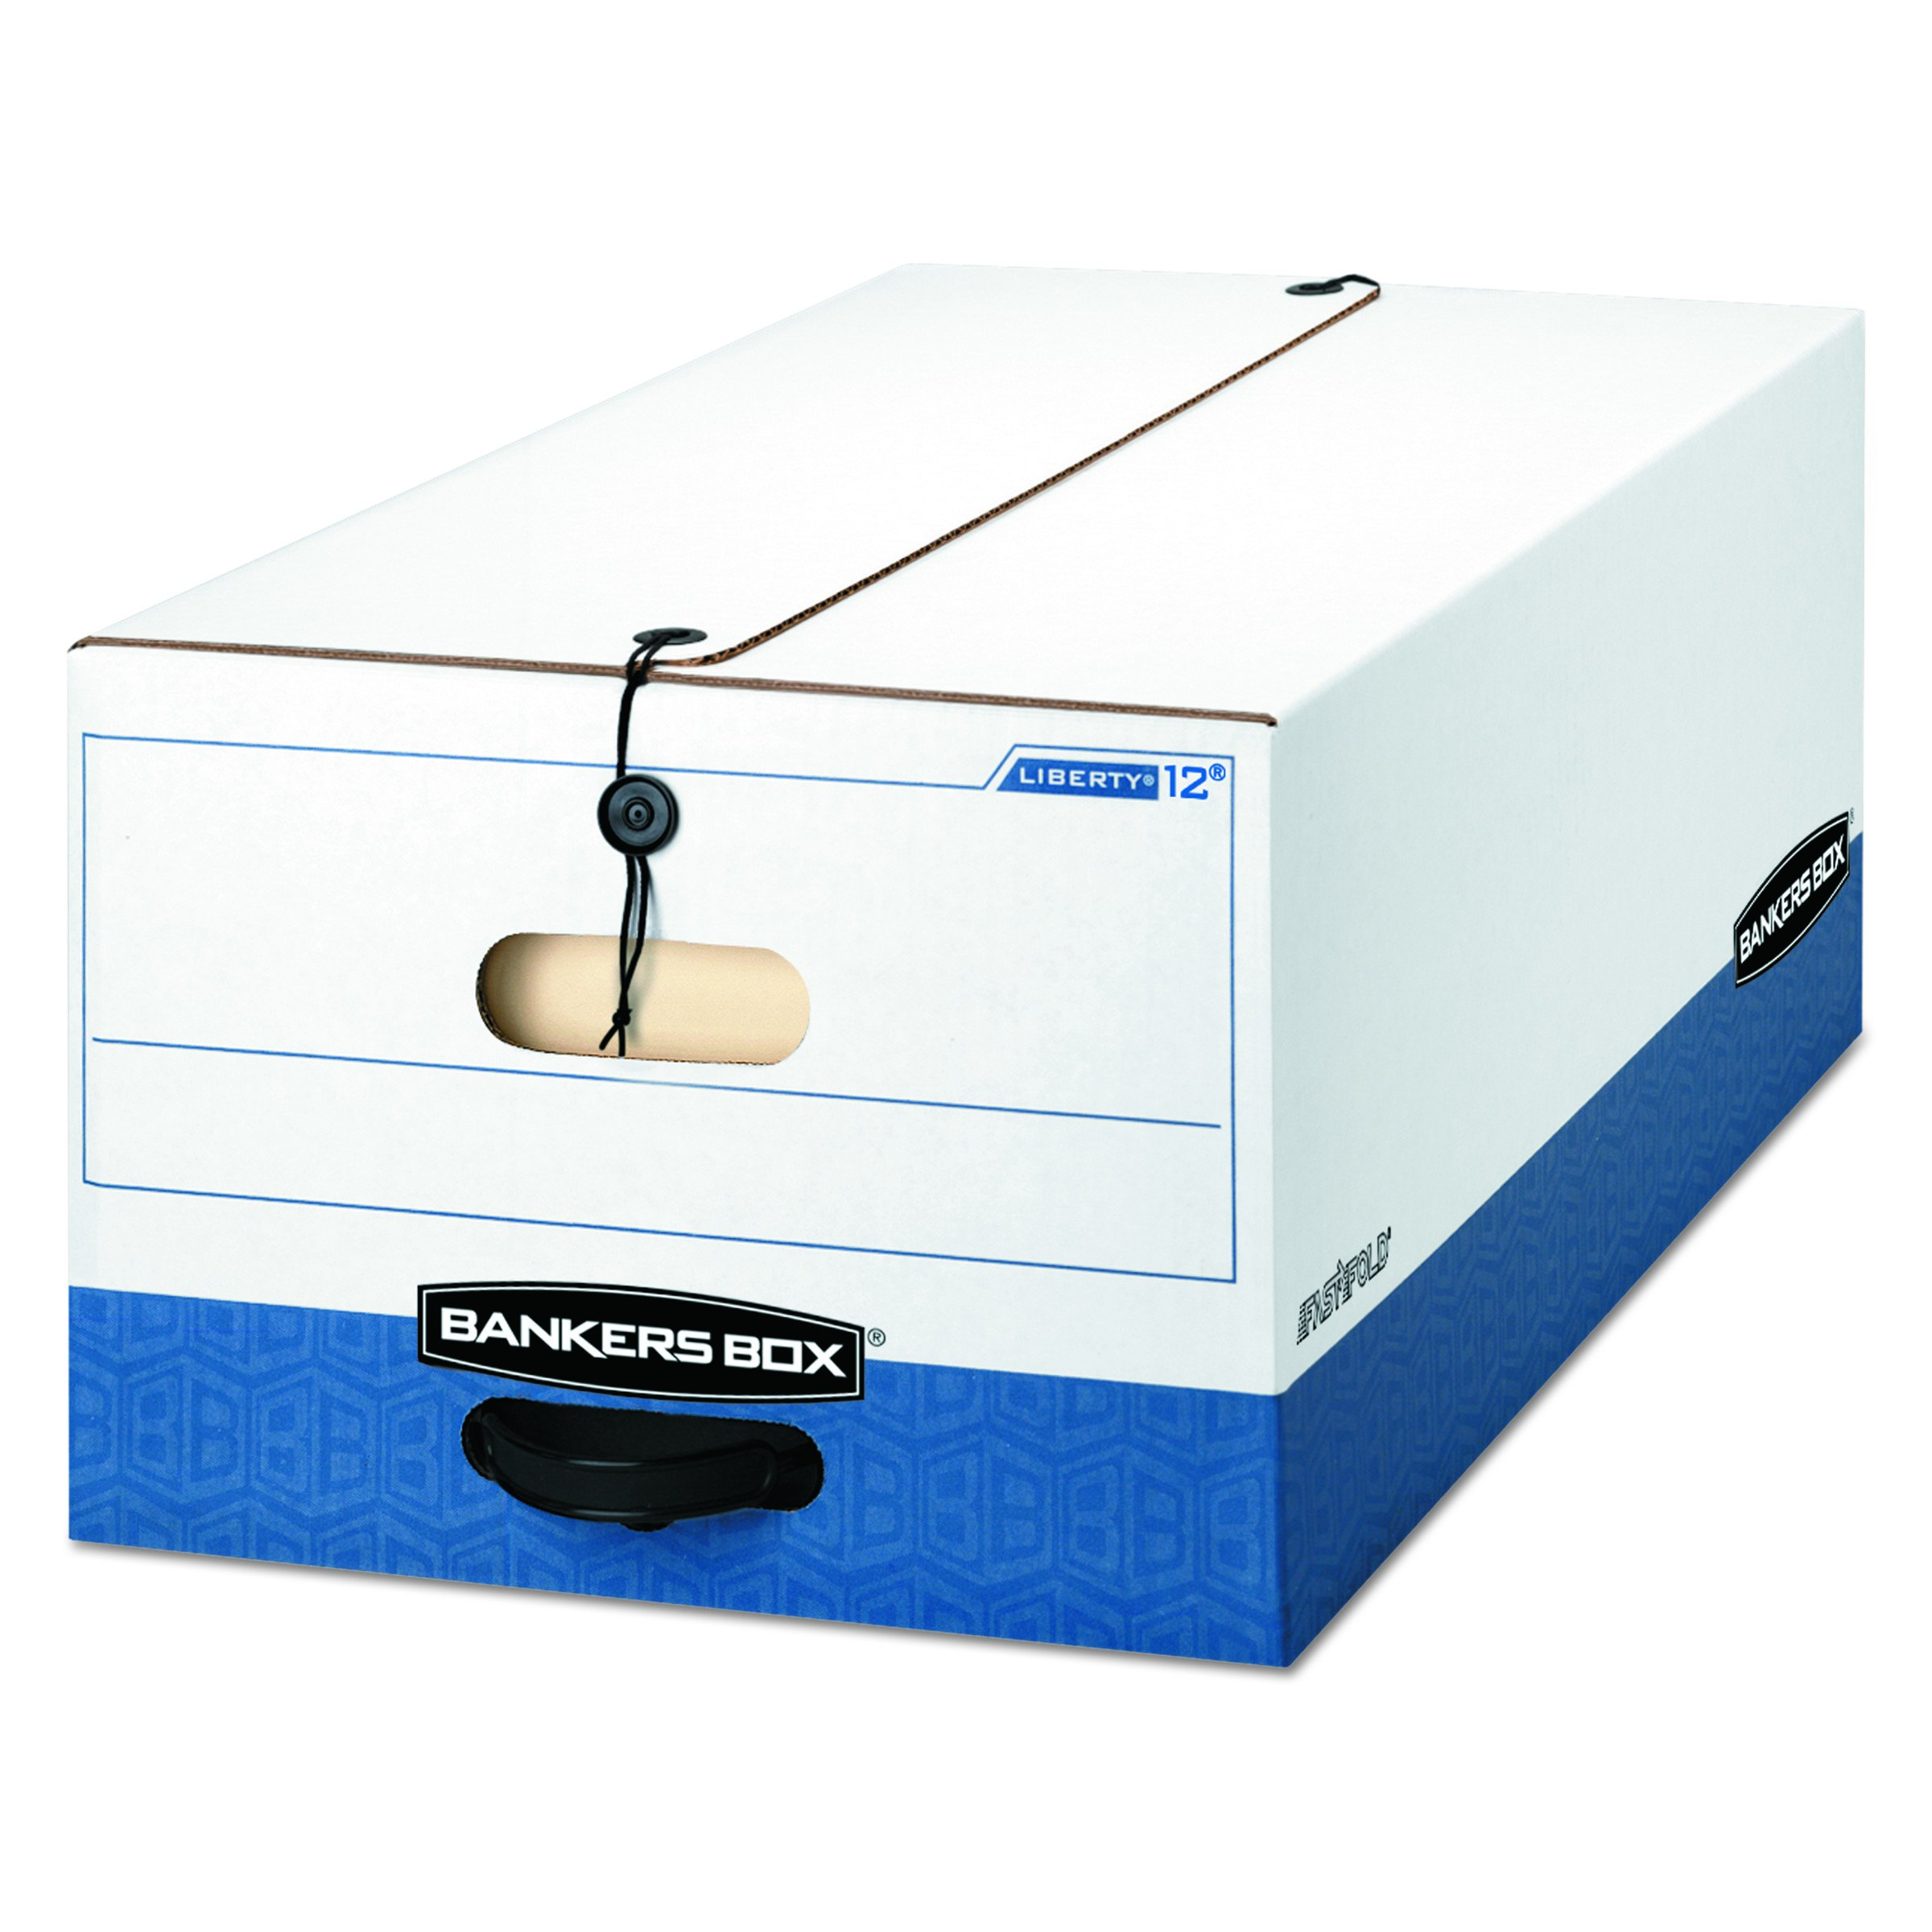 Bankers Box 00012 LIBERTY Heavy-Duty Strength Storage Box, Legal, 15 x 24 x 10, White/Blue (Case of 12)